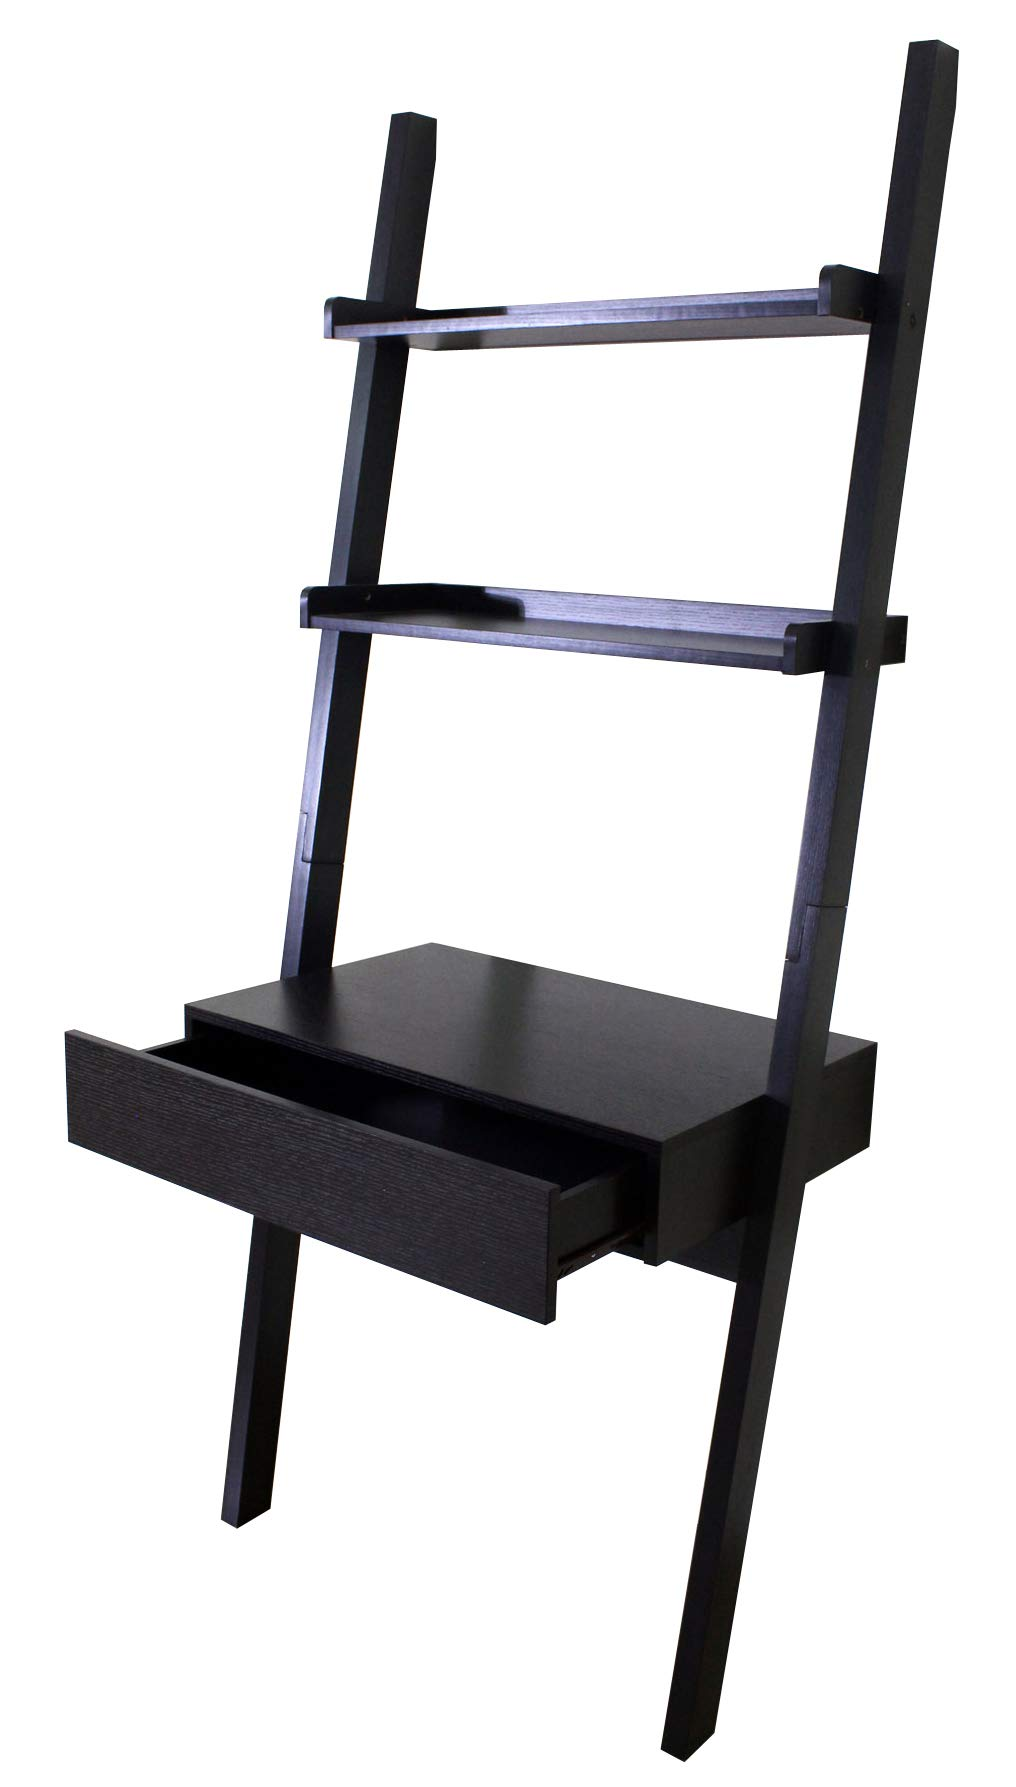 Coaster Furniture 801373 CO-801373 Ladder Desk, Cappuccino by Coaster Home Furnishings